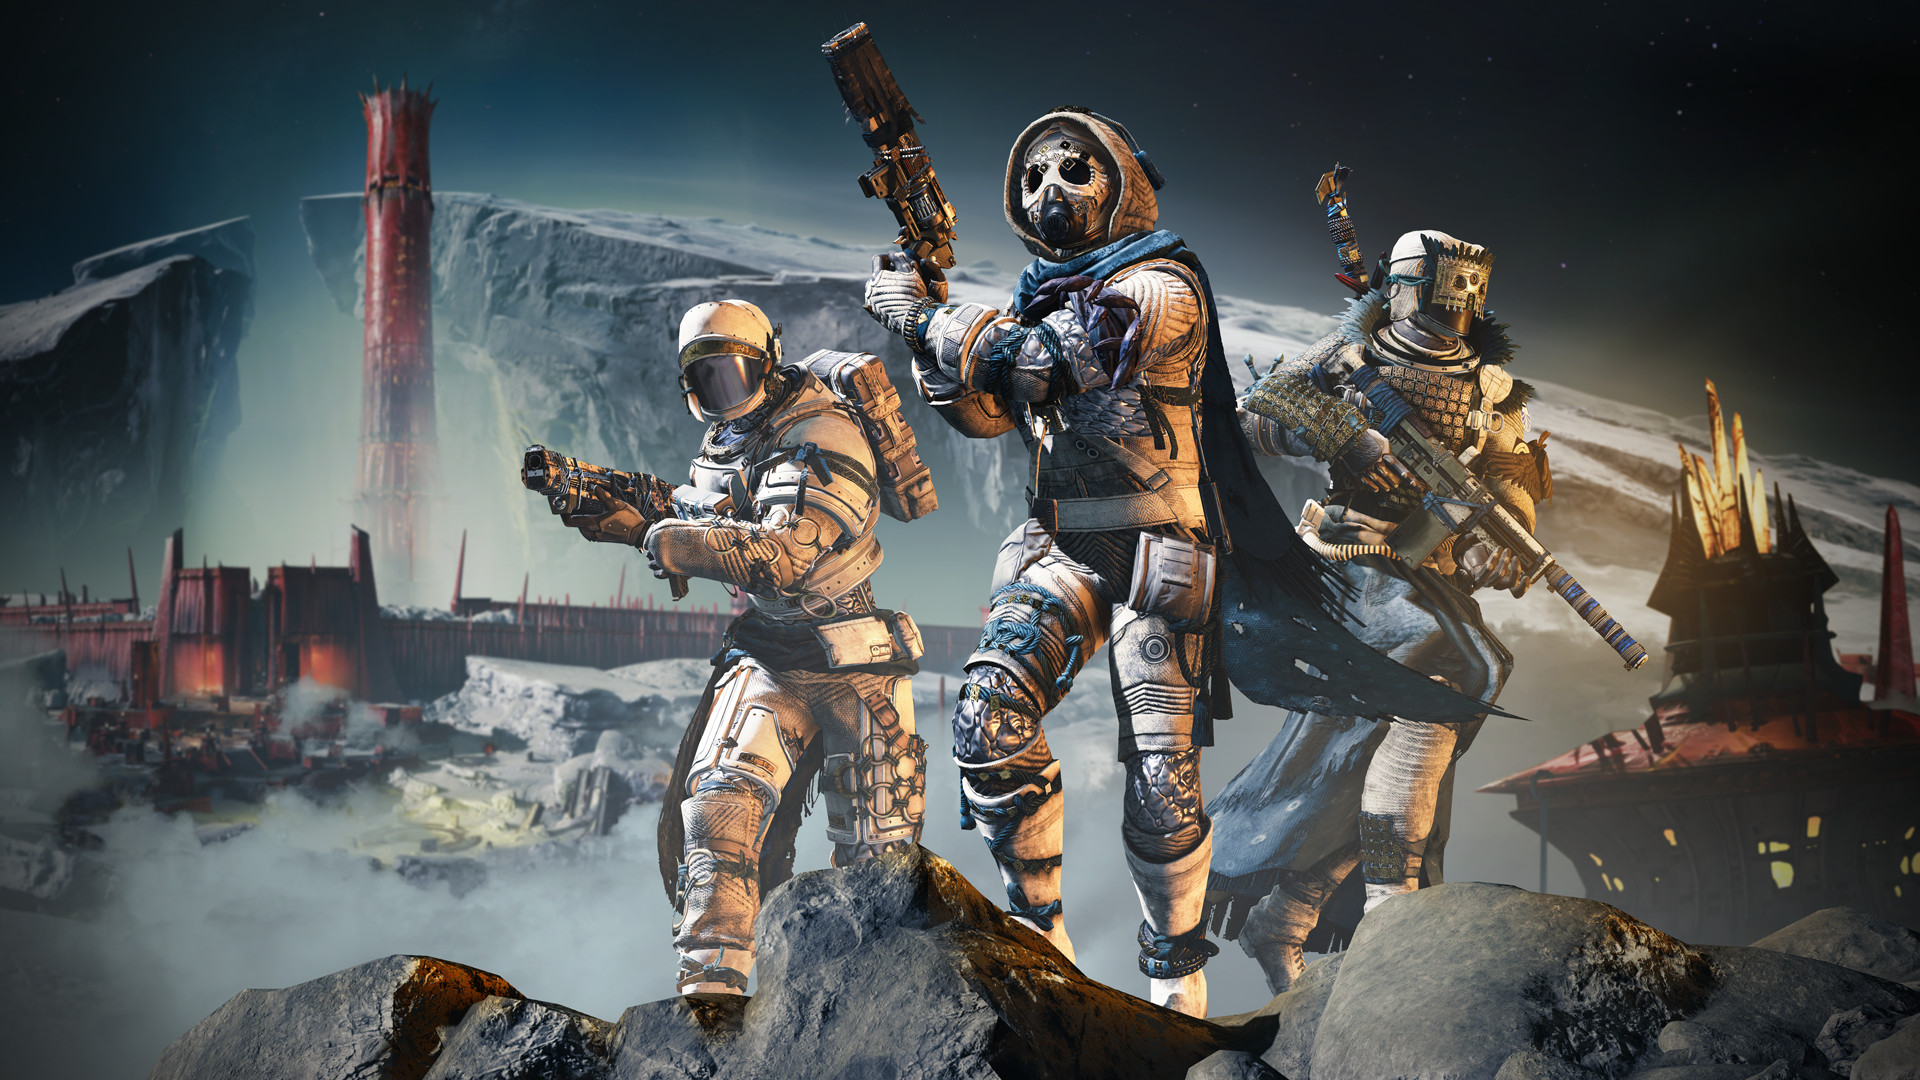 Find the best gaming PC for Destiny 2